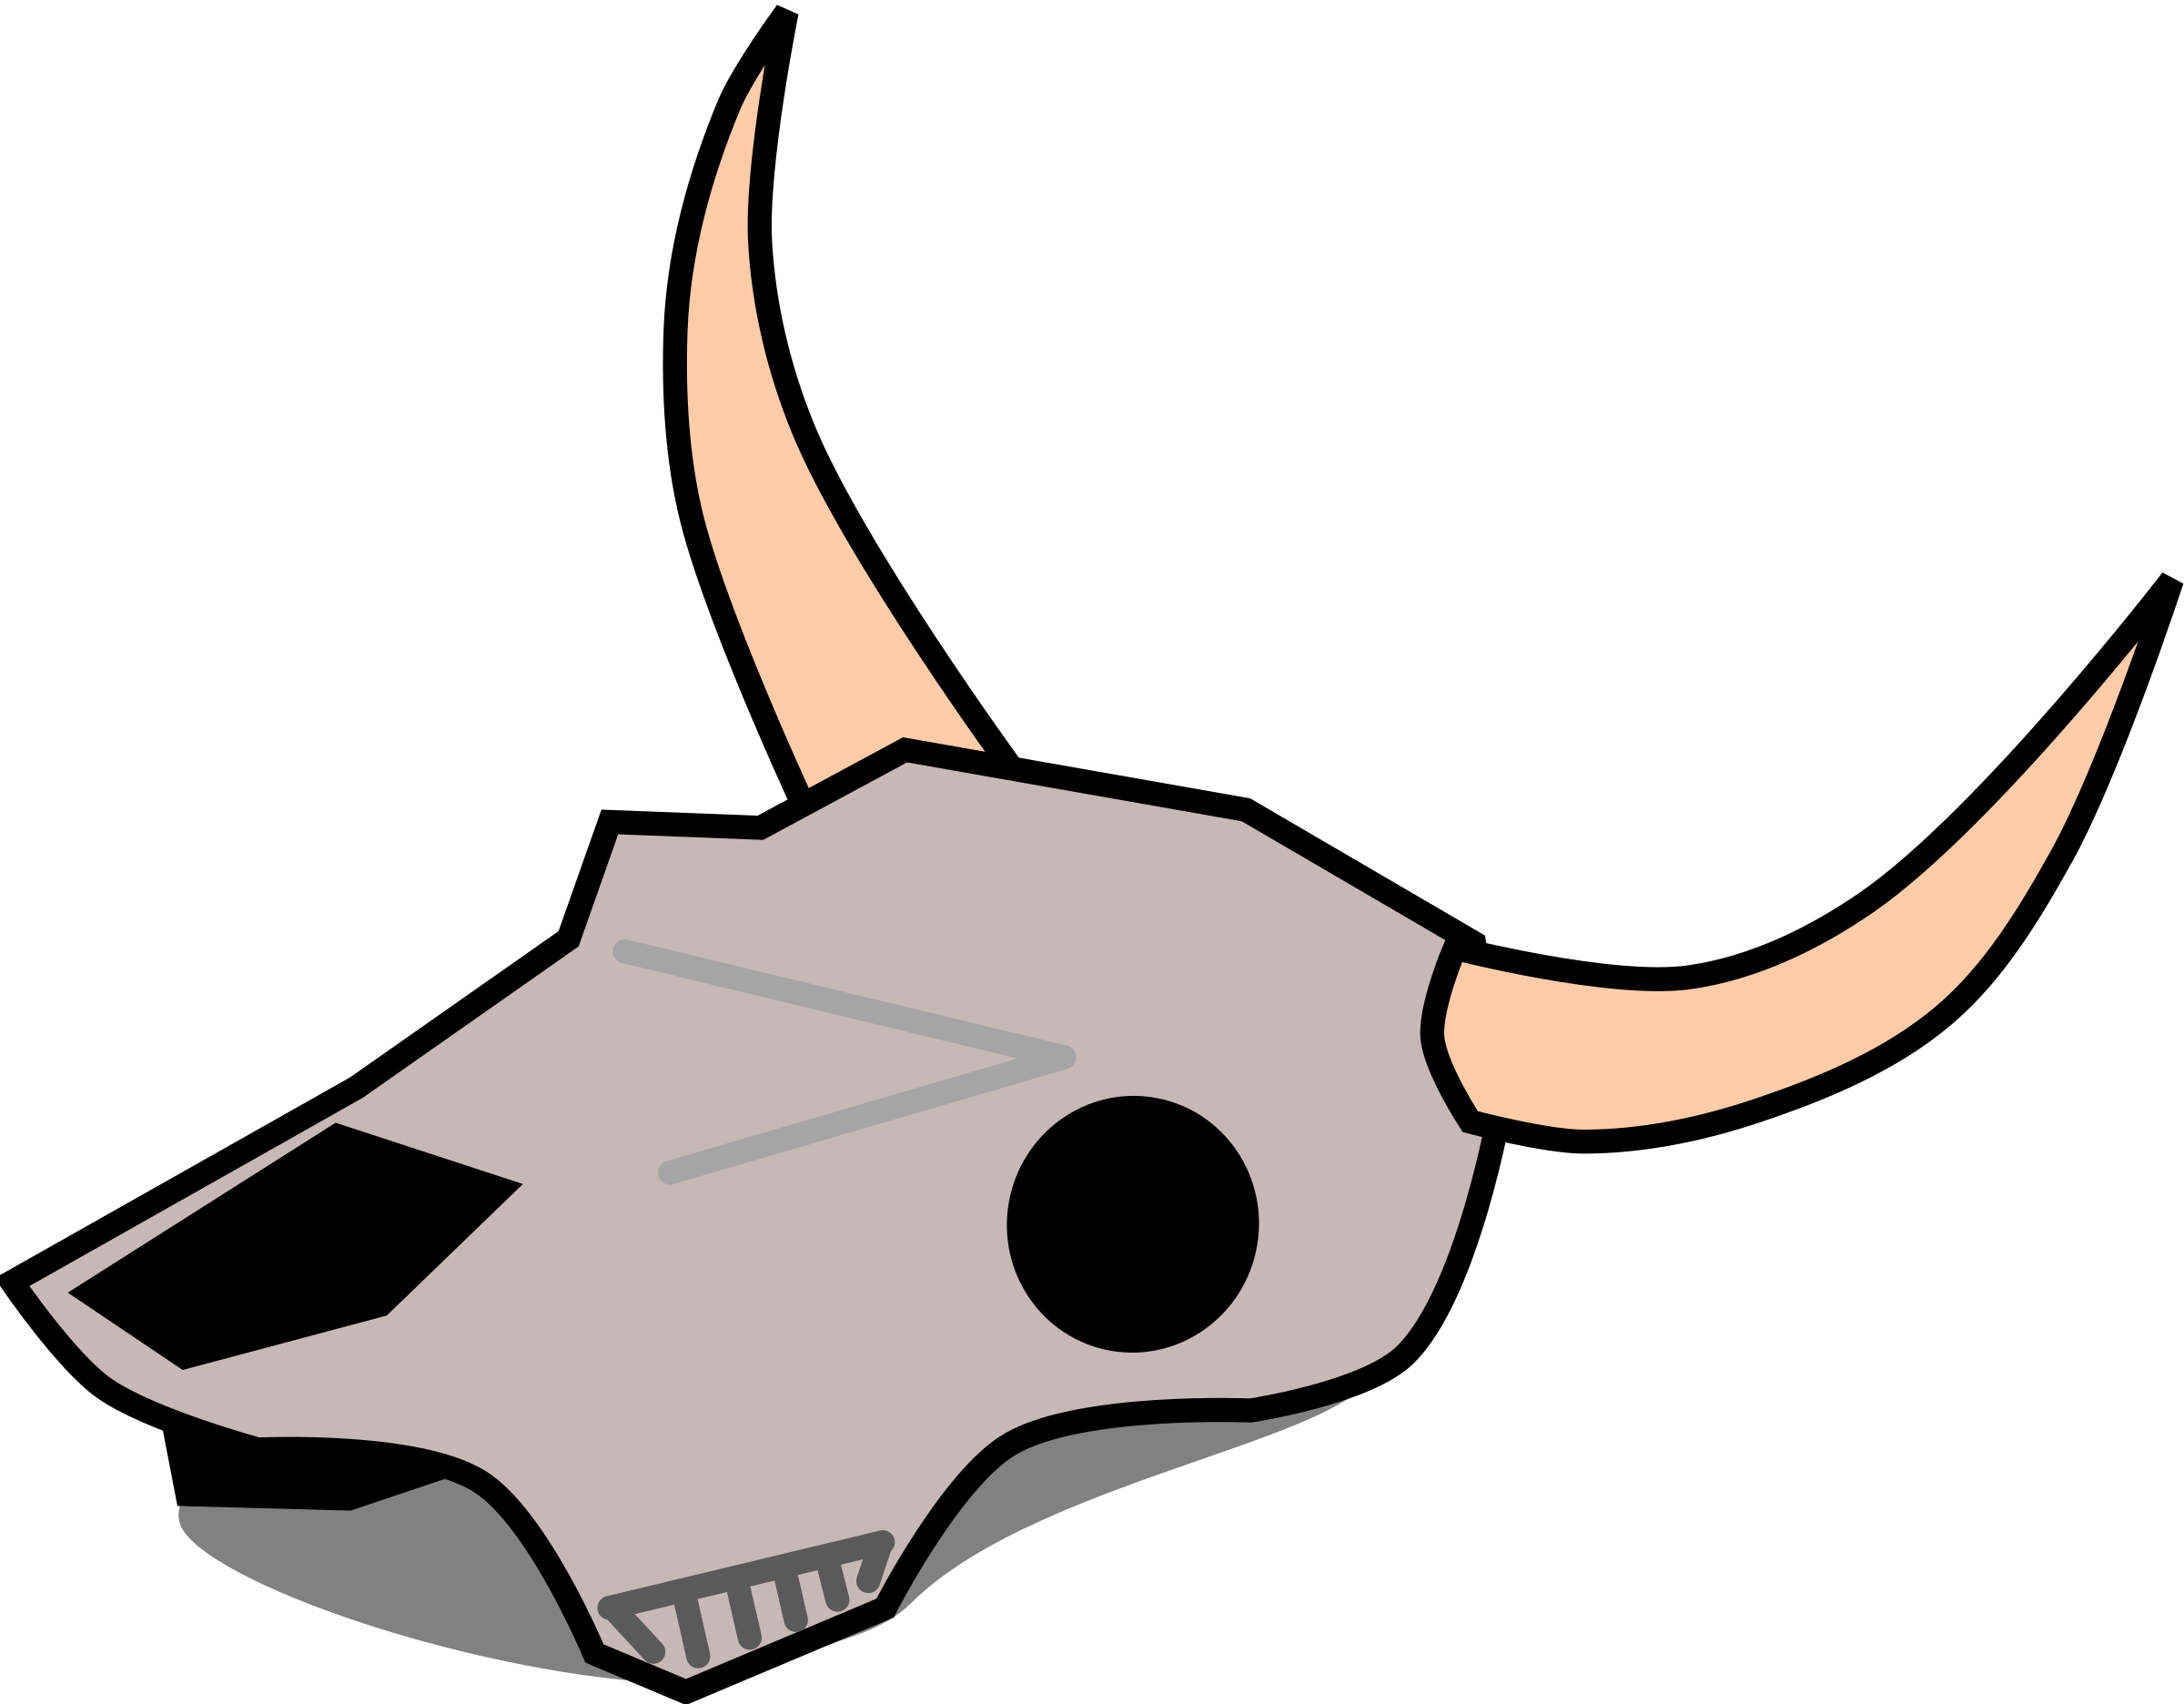 Cow skull png. Shhh quiet clipart free